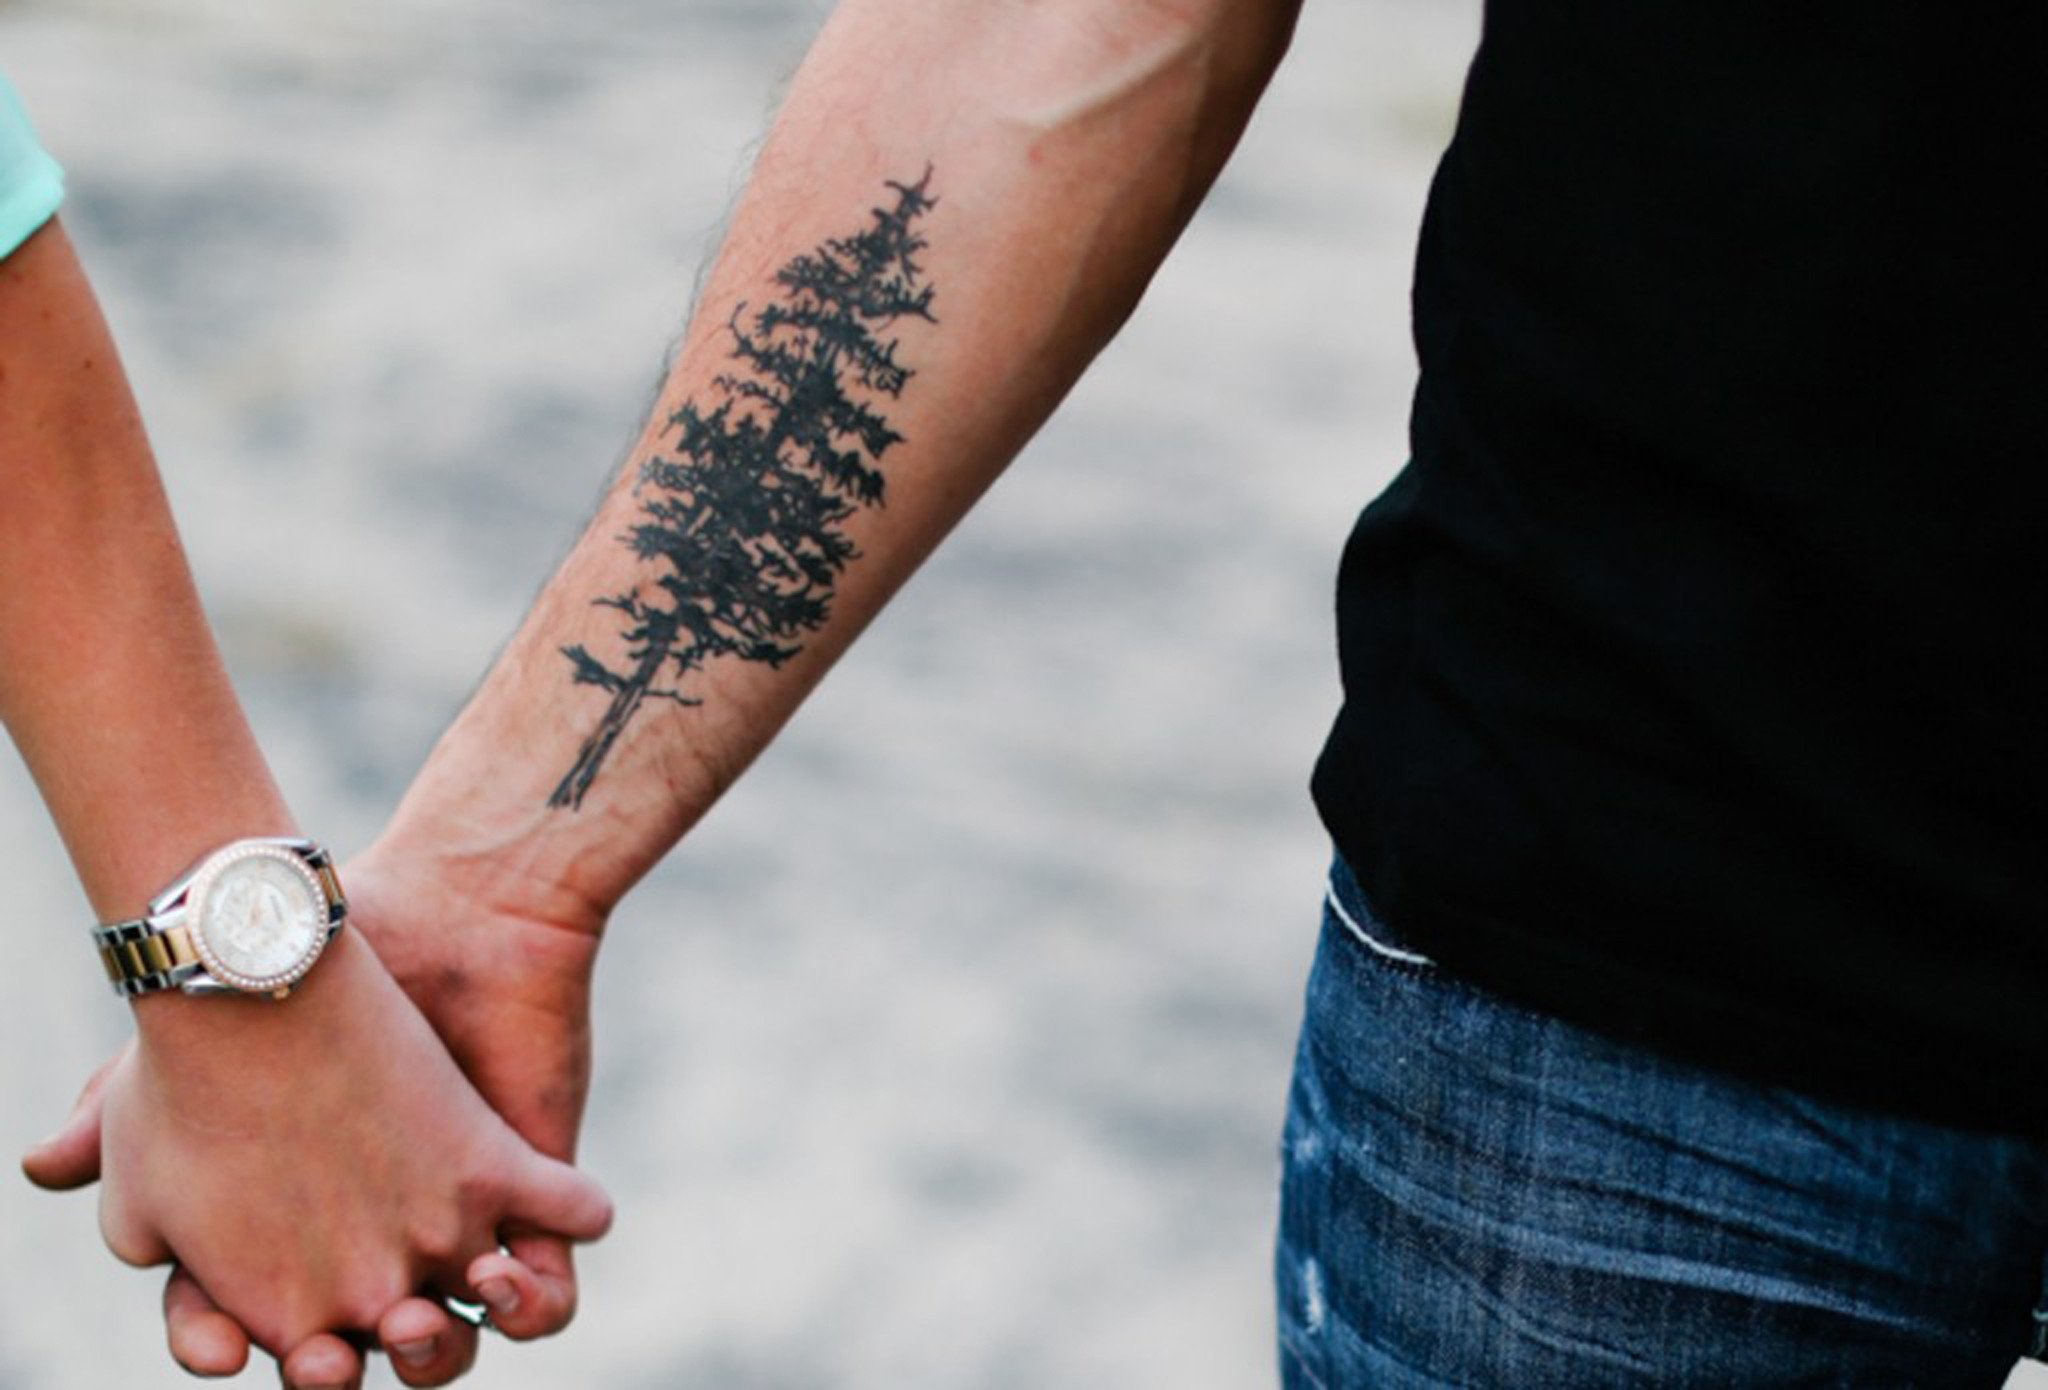 Pine Tree Forearm Tattoo Meaning Tattoo Design